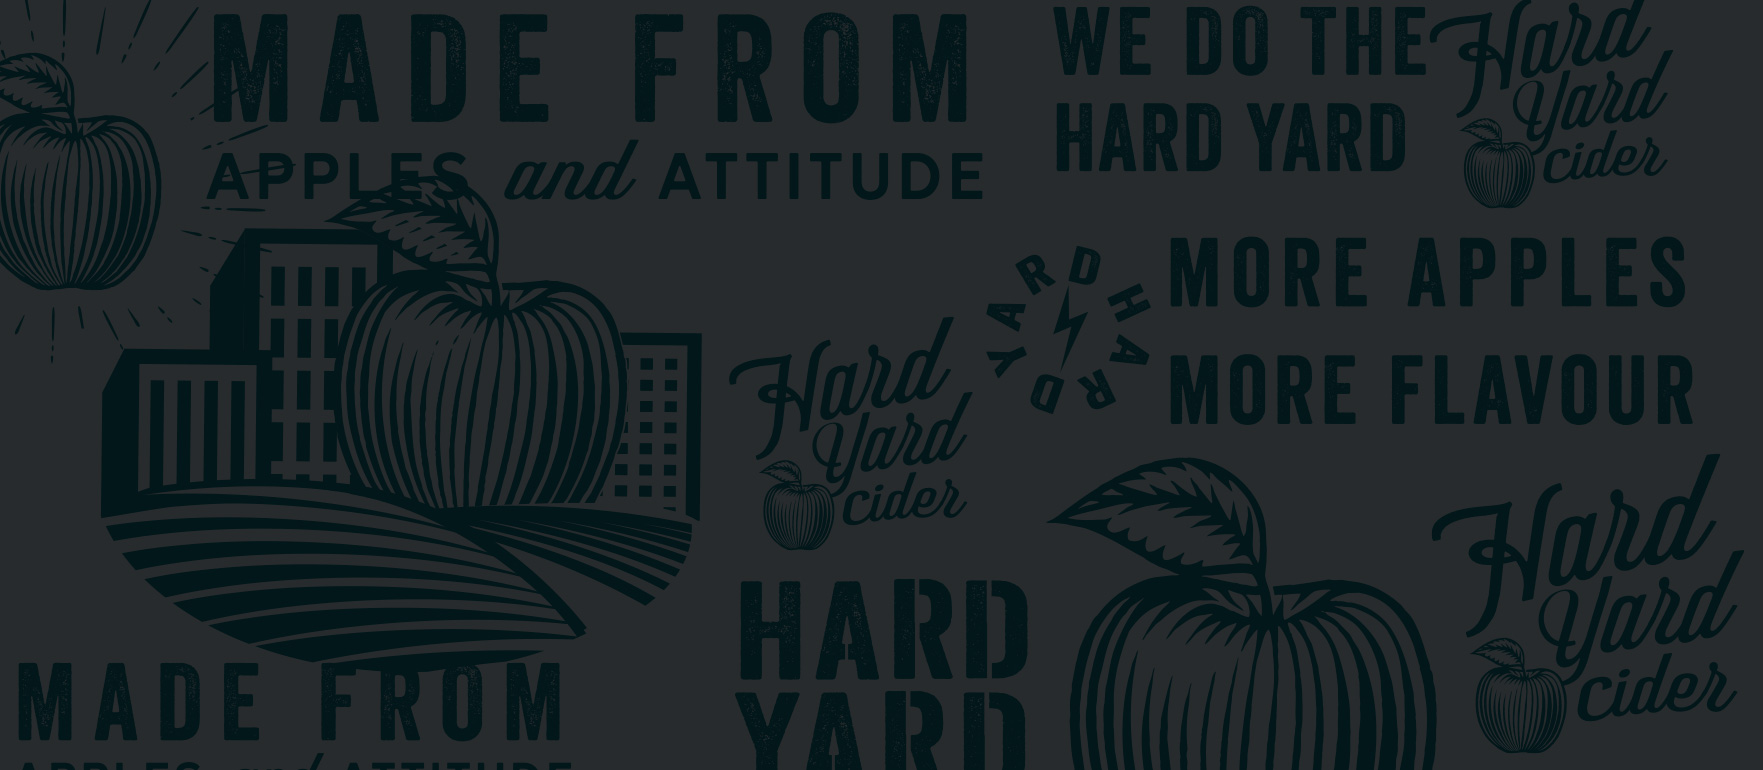 Background Hard Yard Cider